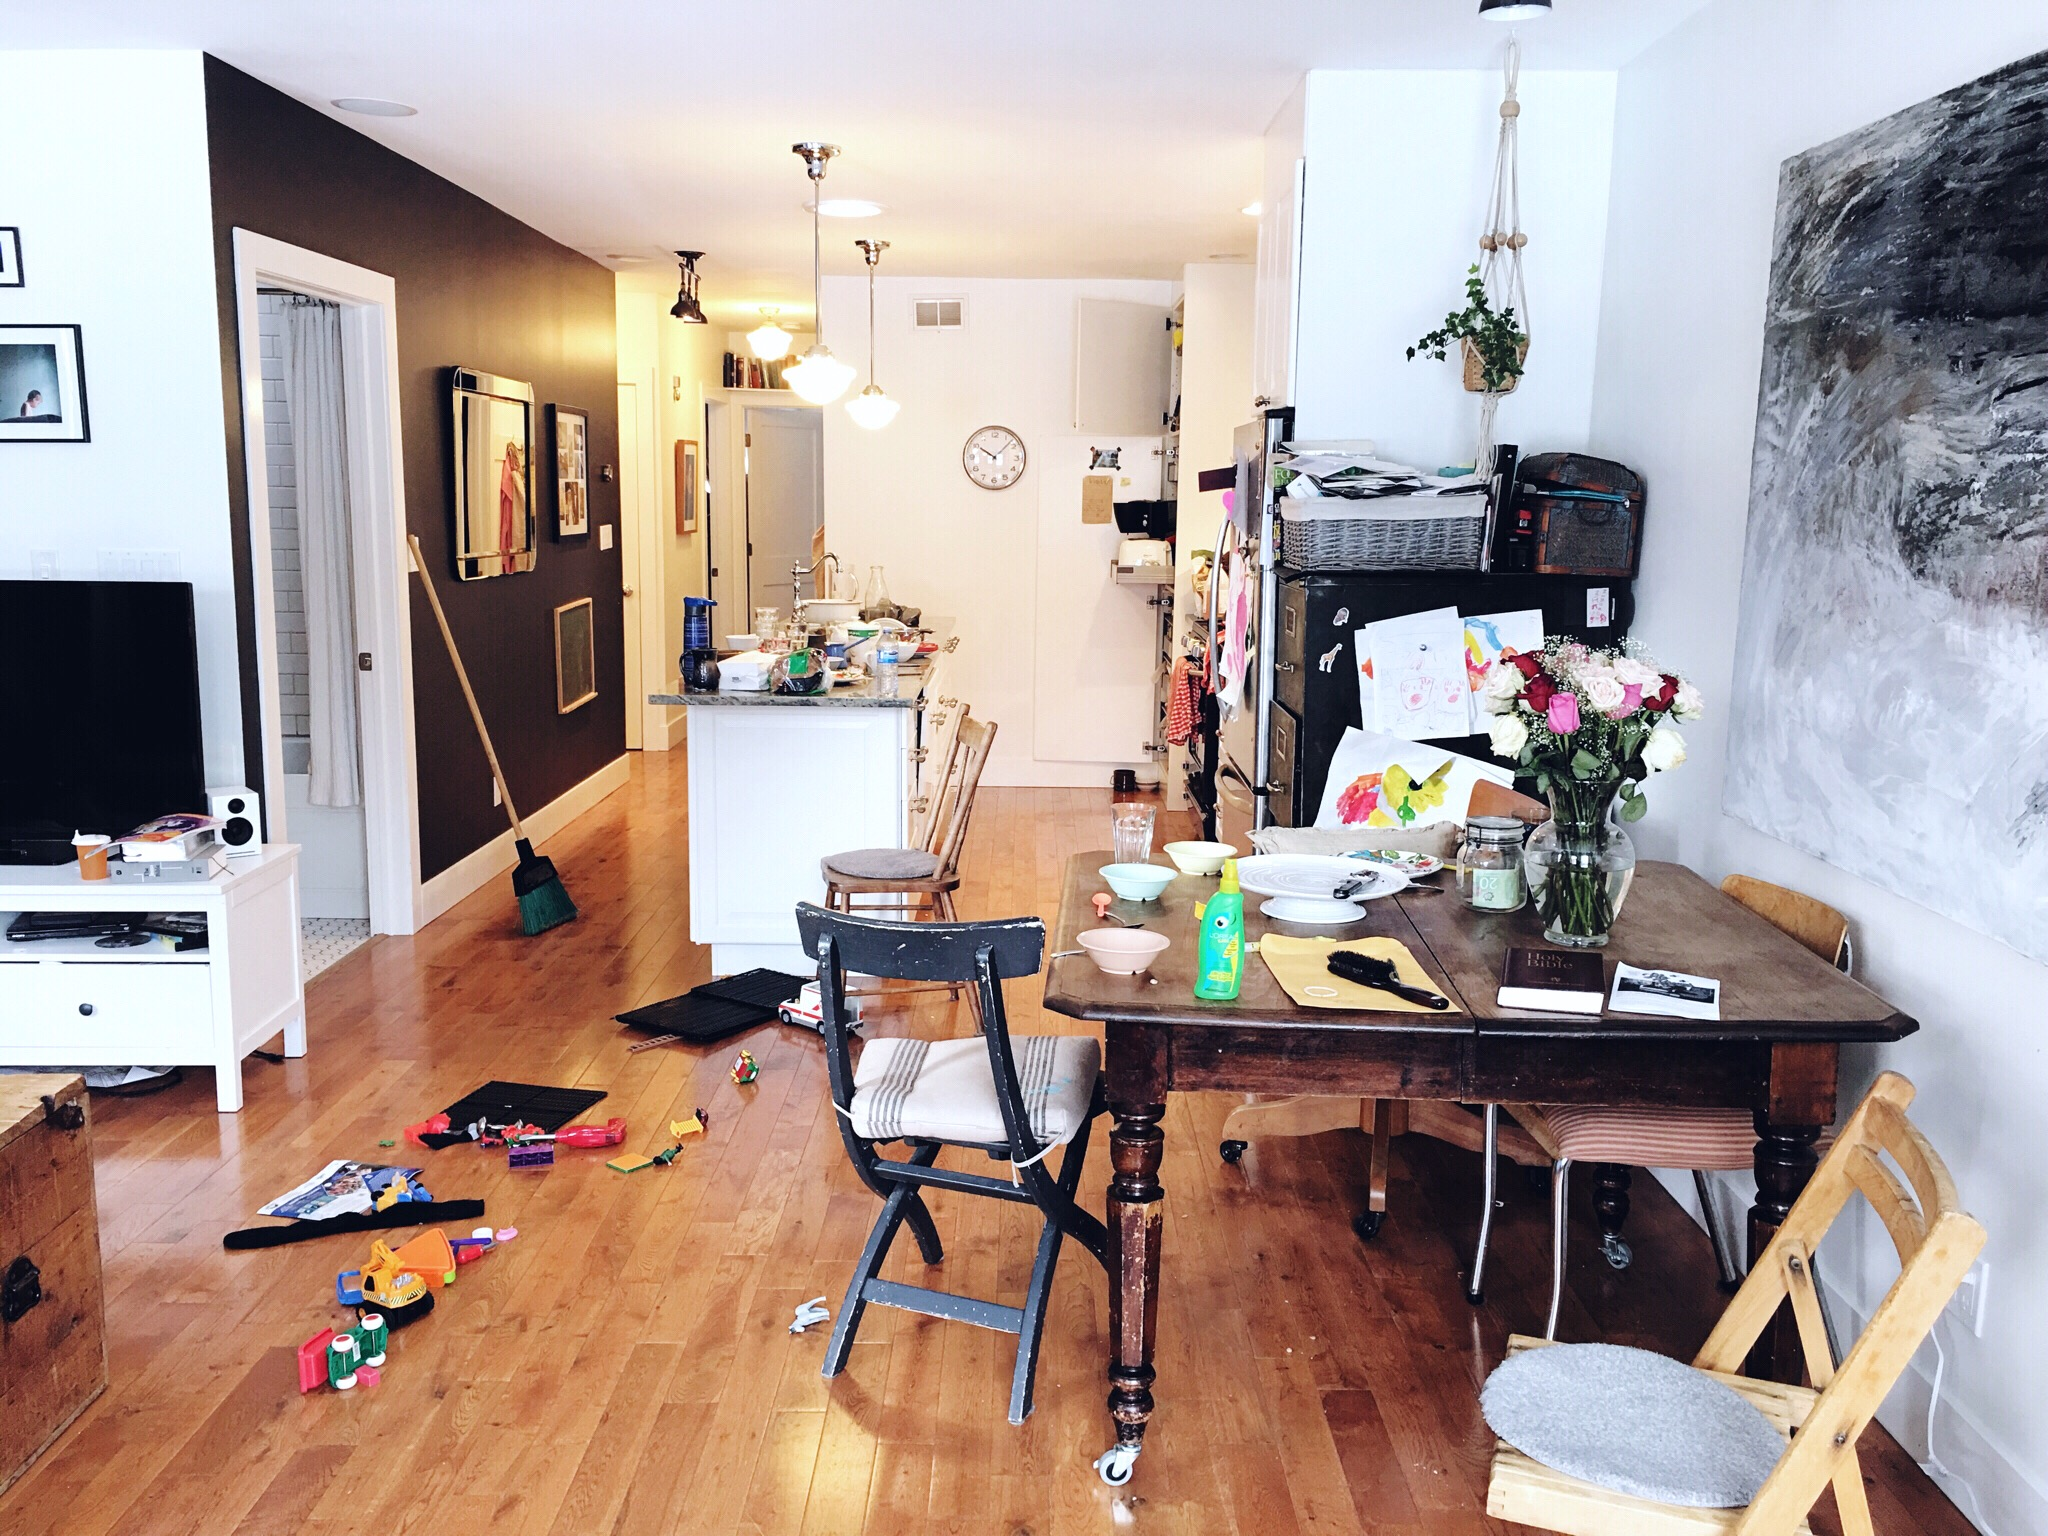 Our house, an average morning's mess.